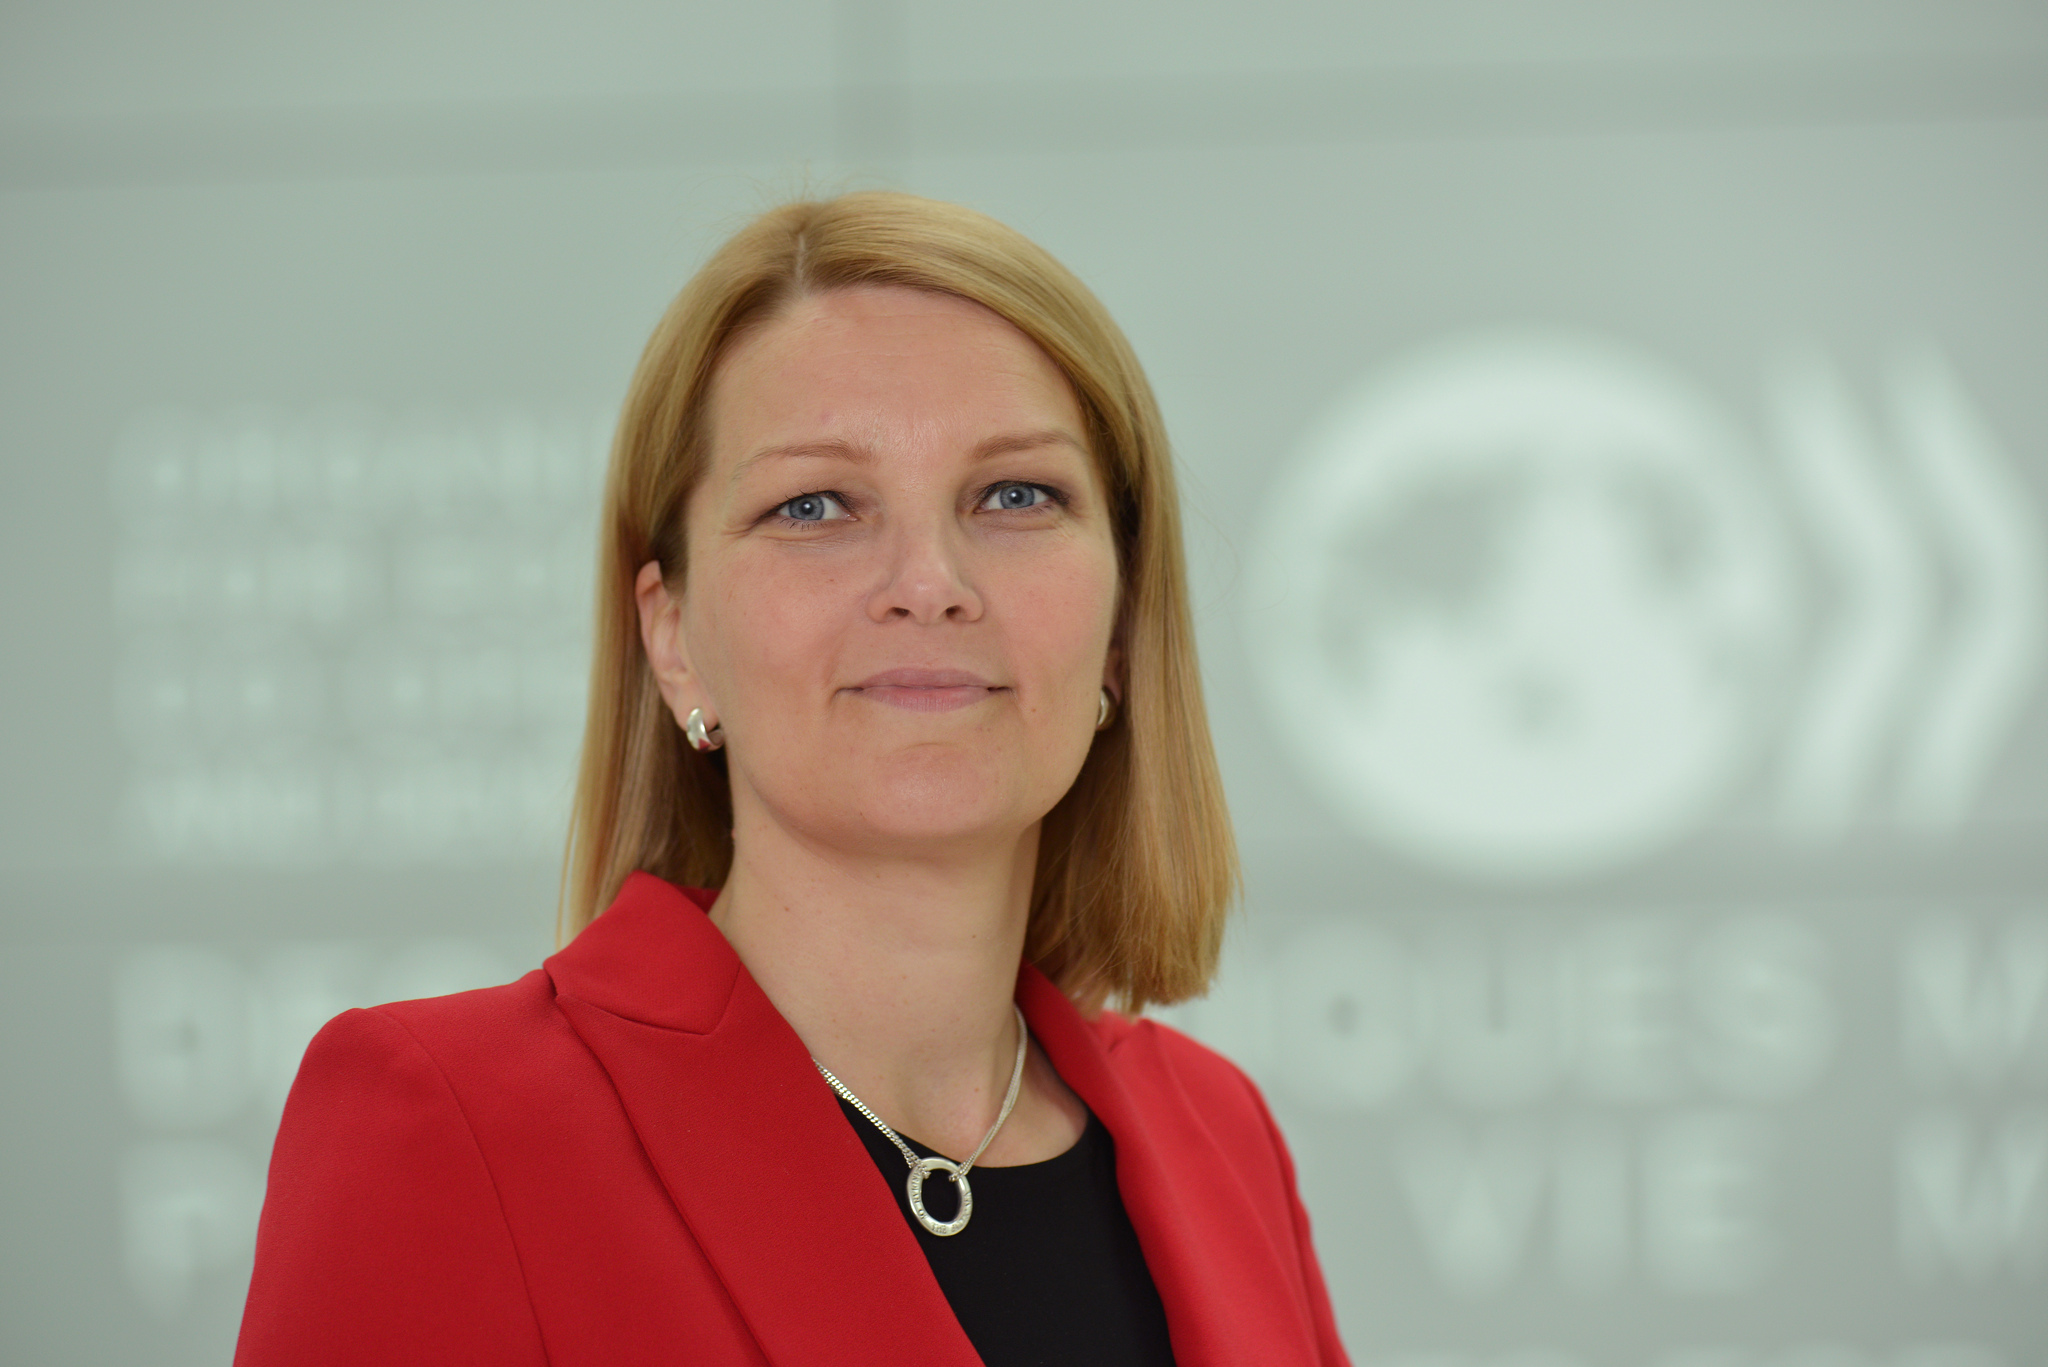 OECD Deputy Secretary-General Mari Kiviniemi: Sticks to facts and fears protectionism